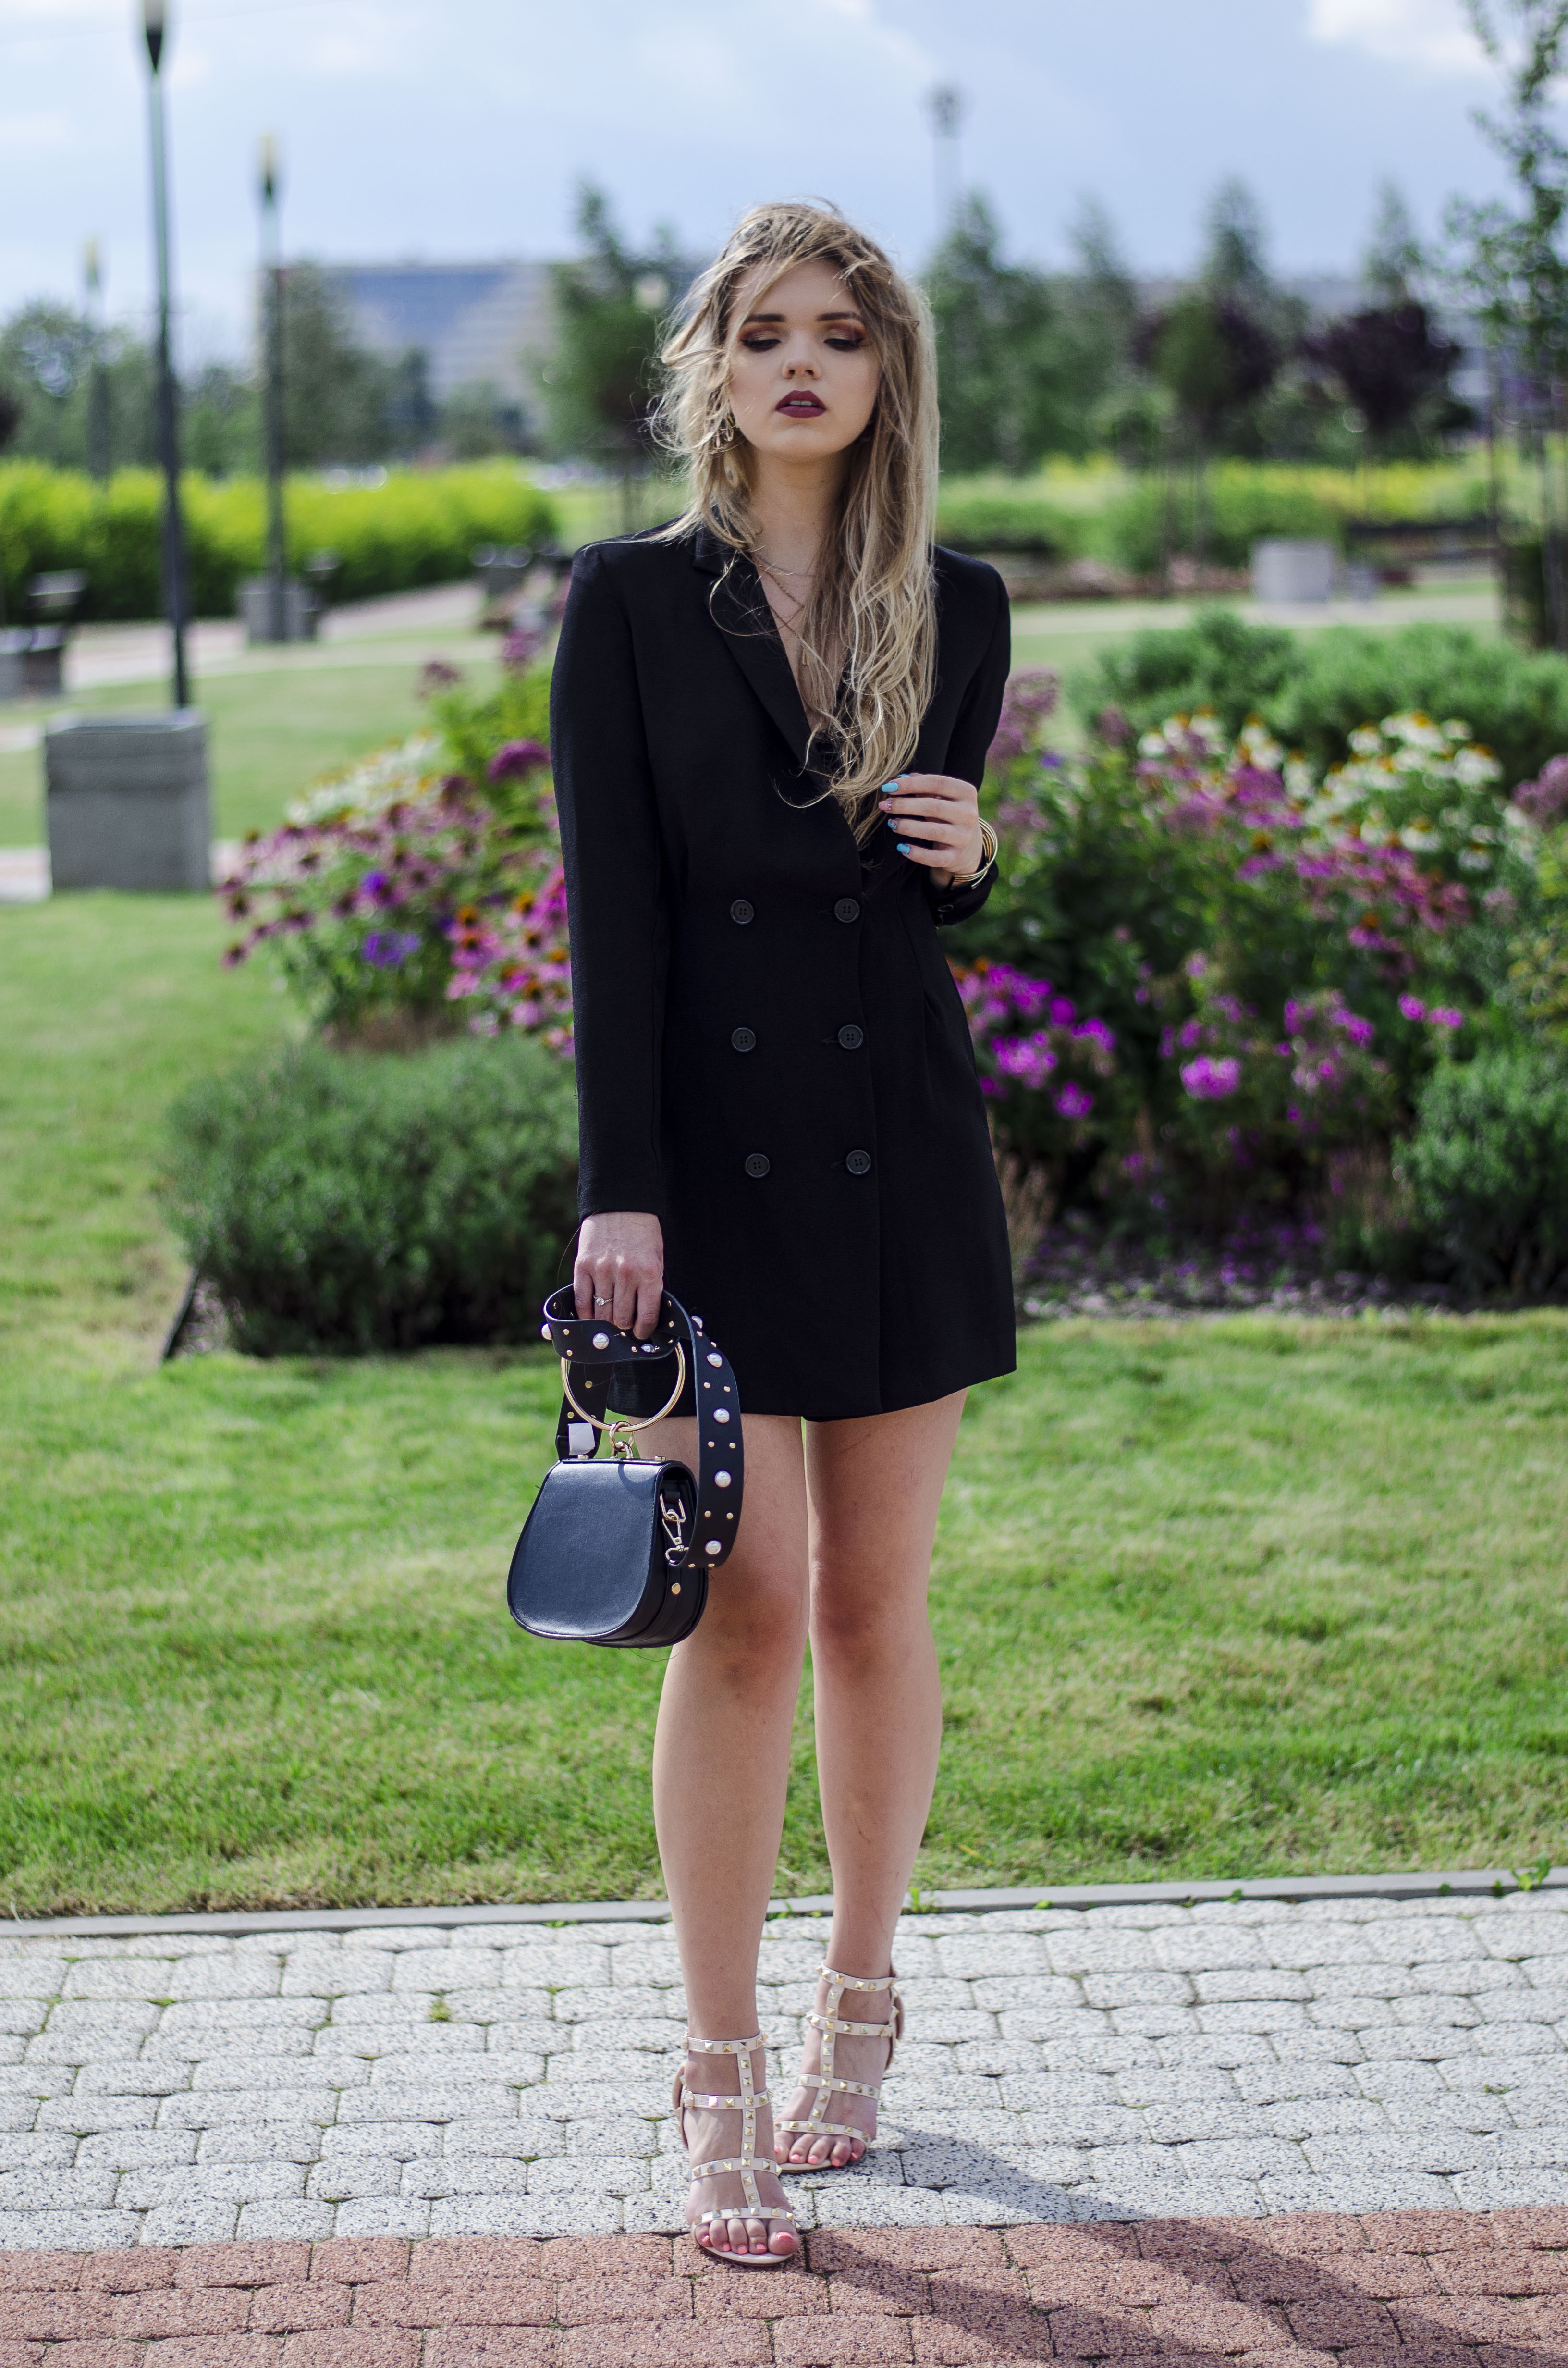 The world is my runway.: Black dress